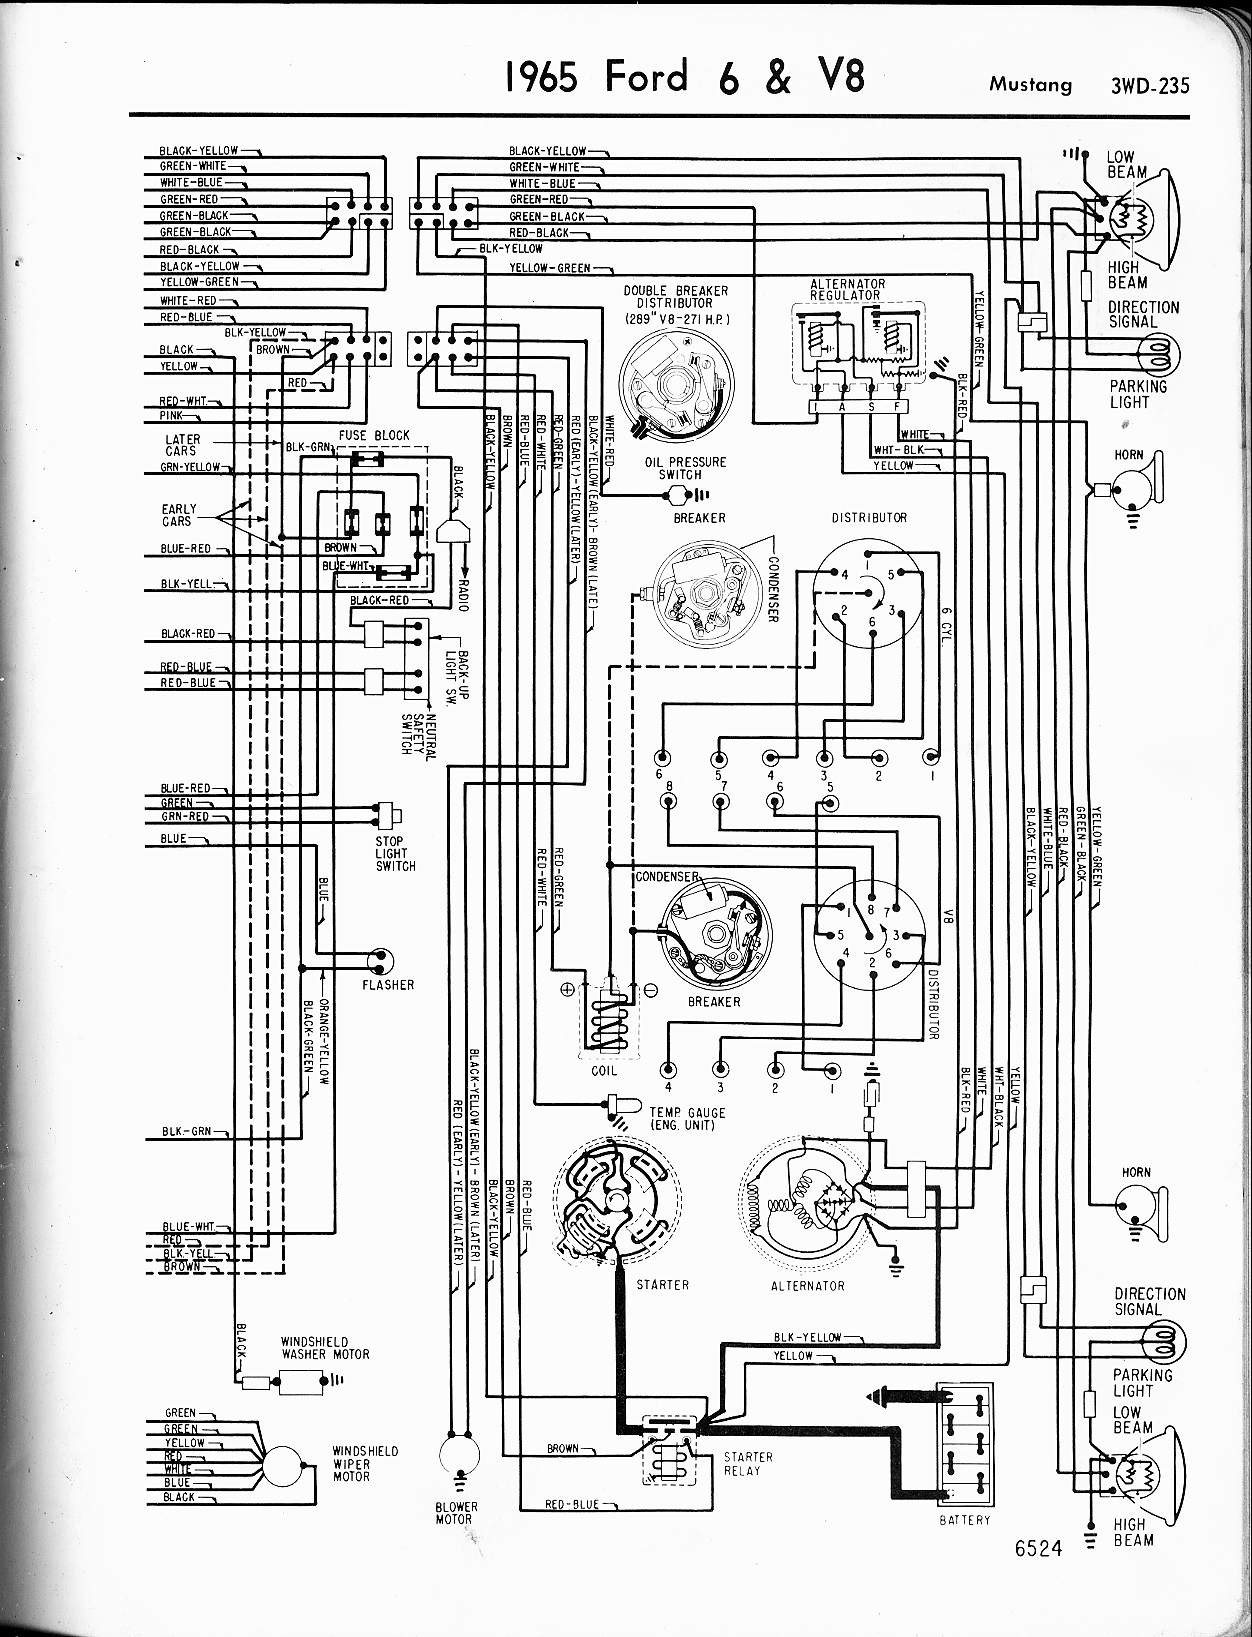 1968 Mustang Dash Cluster Wiring Diagram 68 Library Turn Signal Switch Rh Detoxicrecenze Com